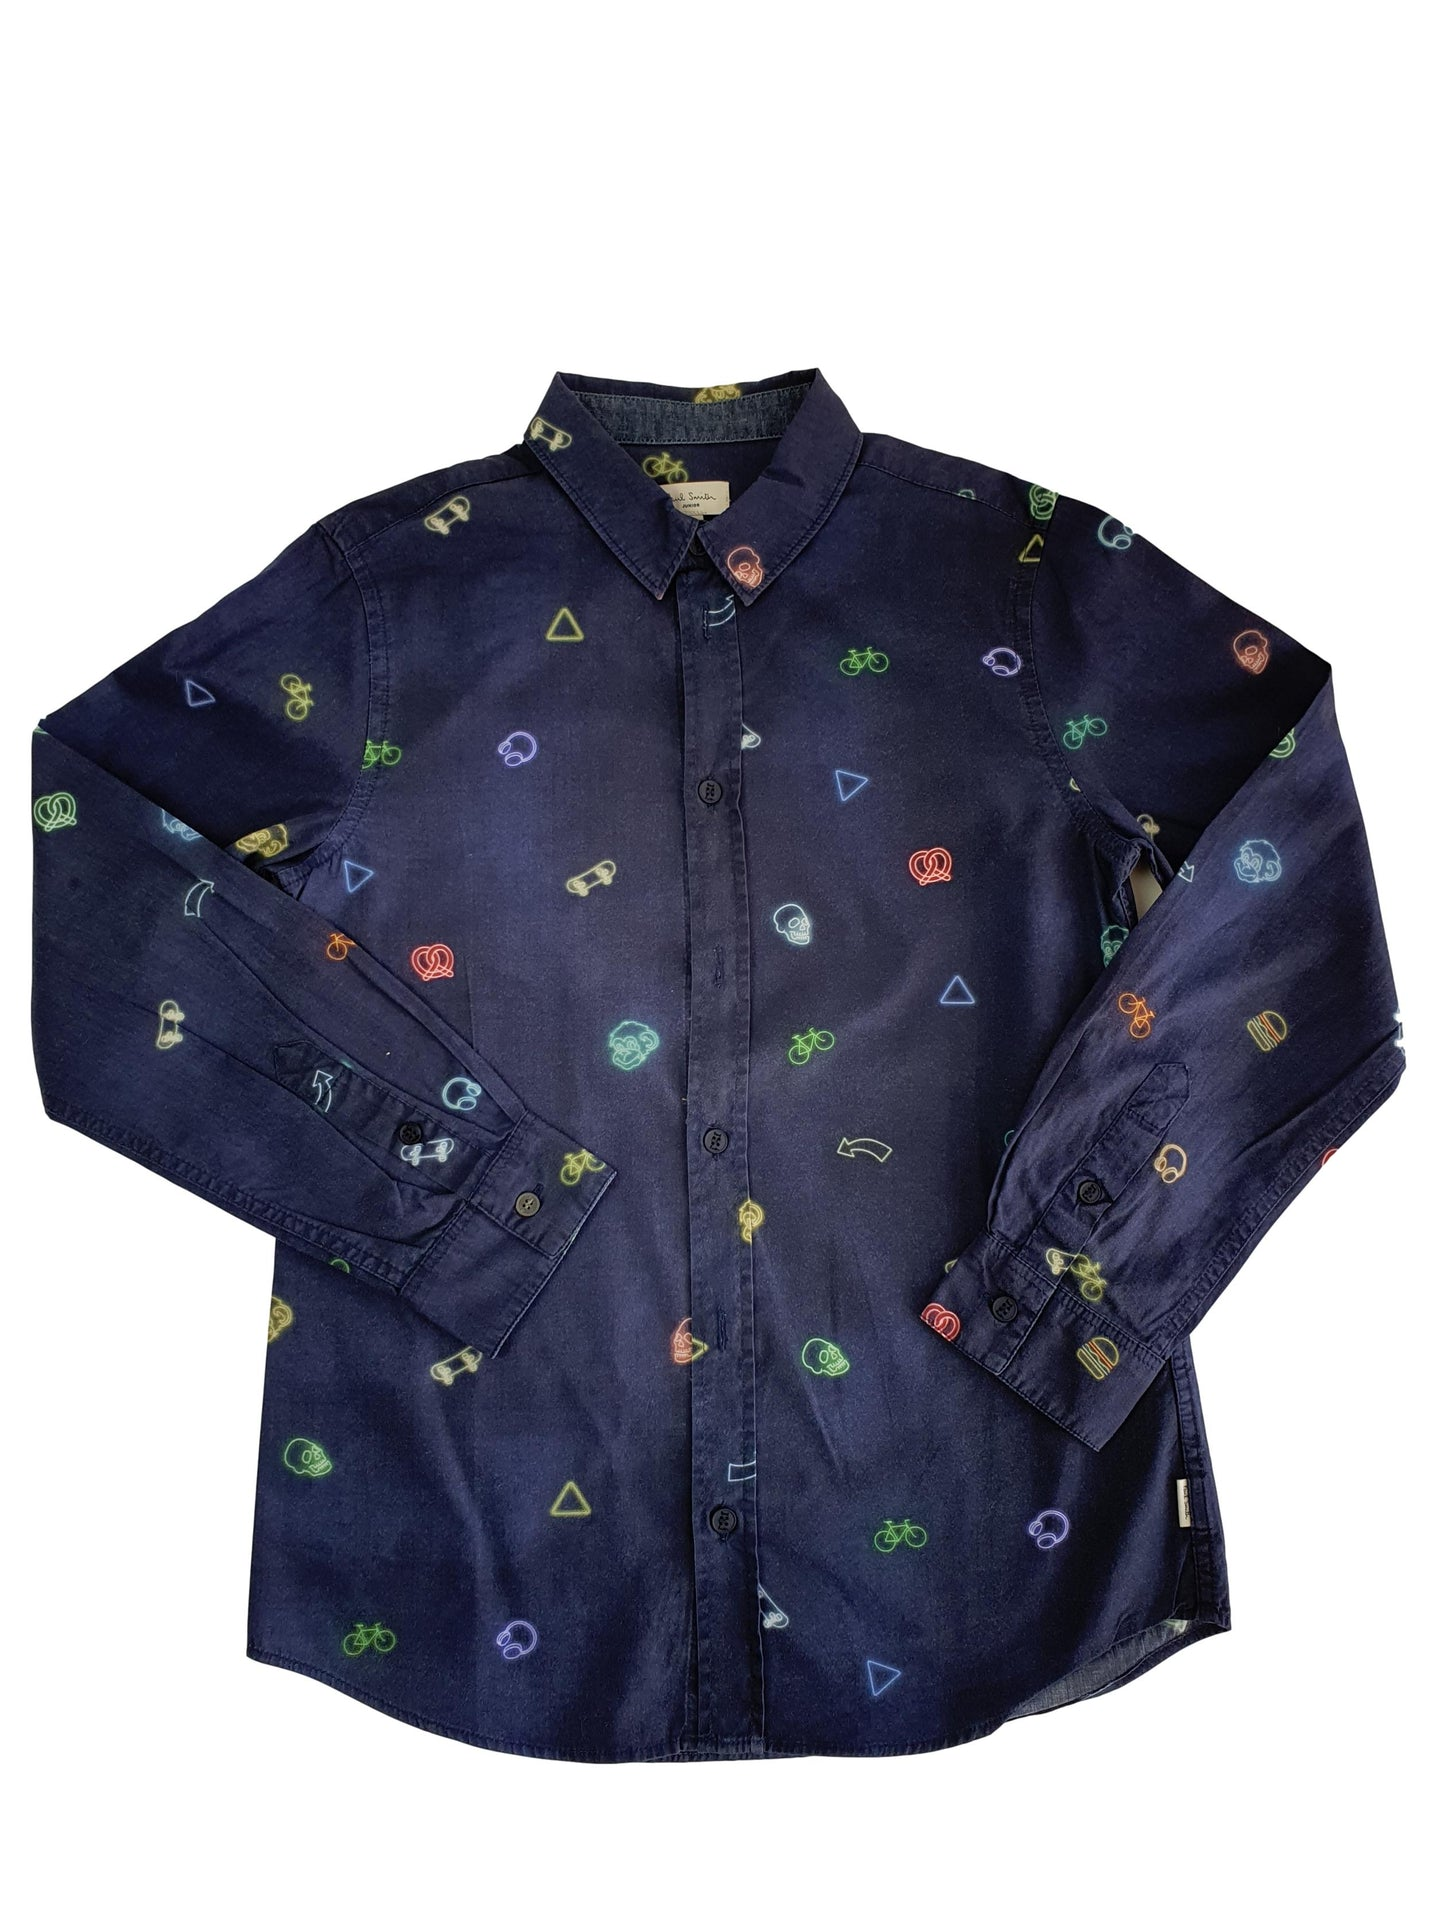 PAUL SMITH boy shirt 10yo